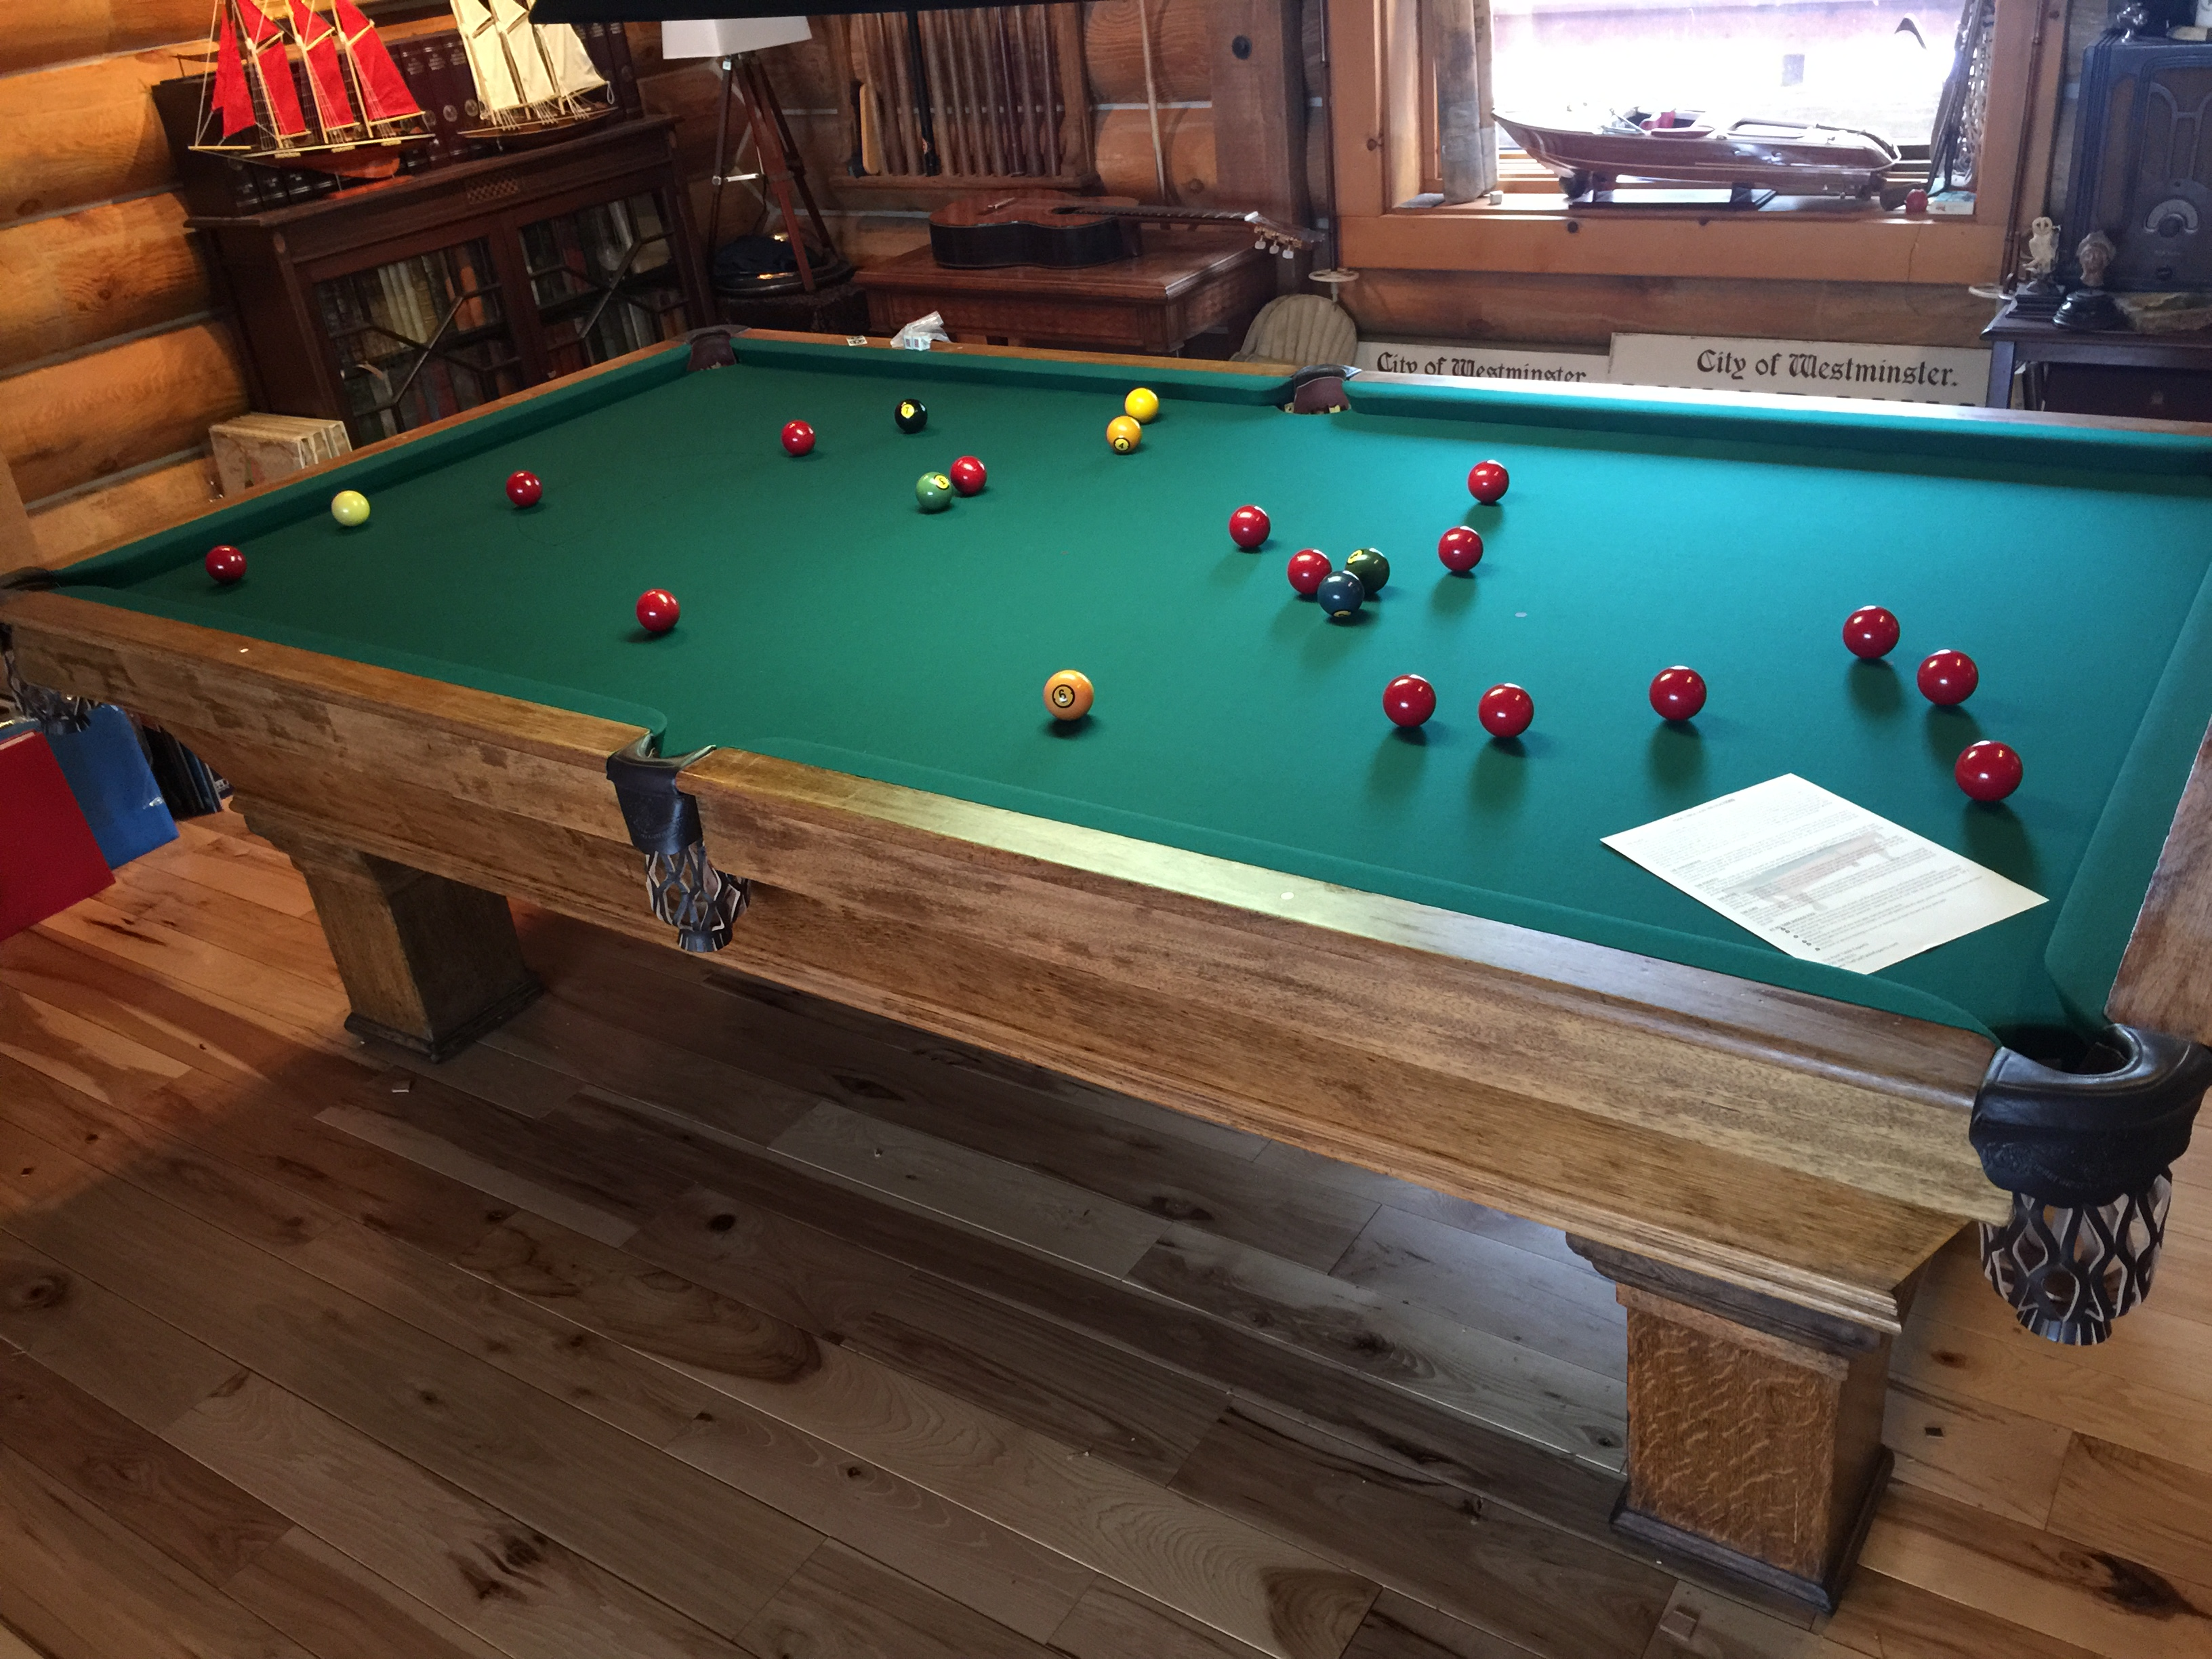 We Were Called To Evergreen Colorado To Recloth This Antique Snooker Table.  Upon Examination Of The Table, It Was Discovered That The Person Who Built  It ...